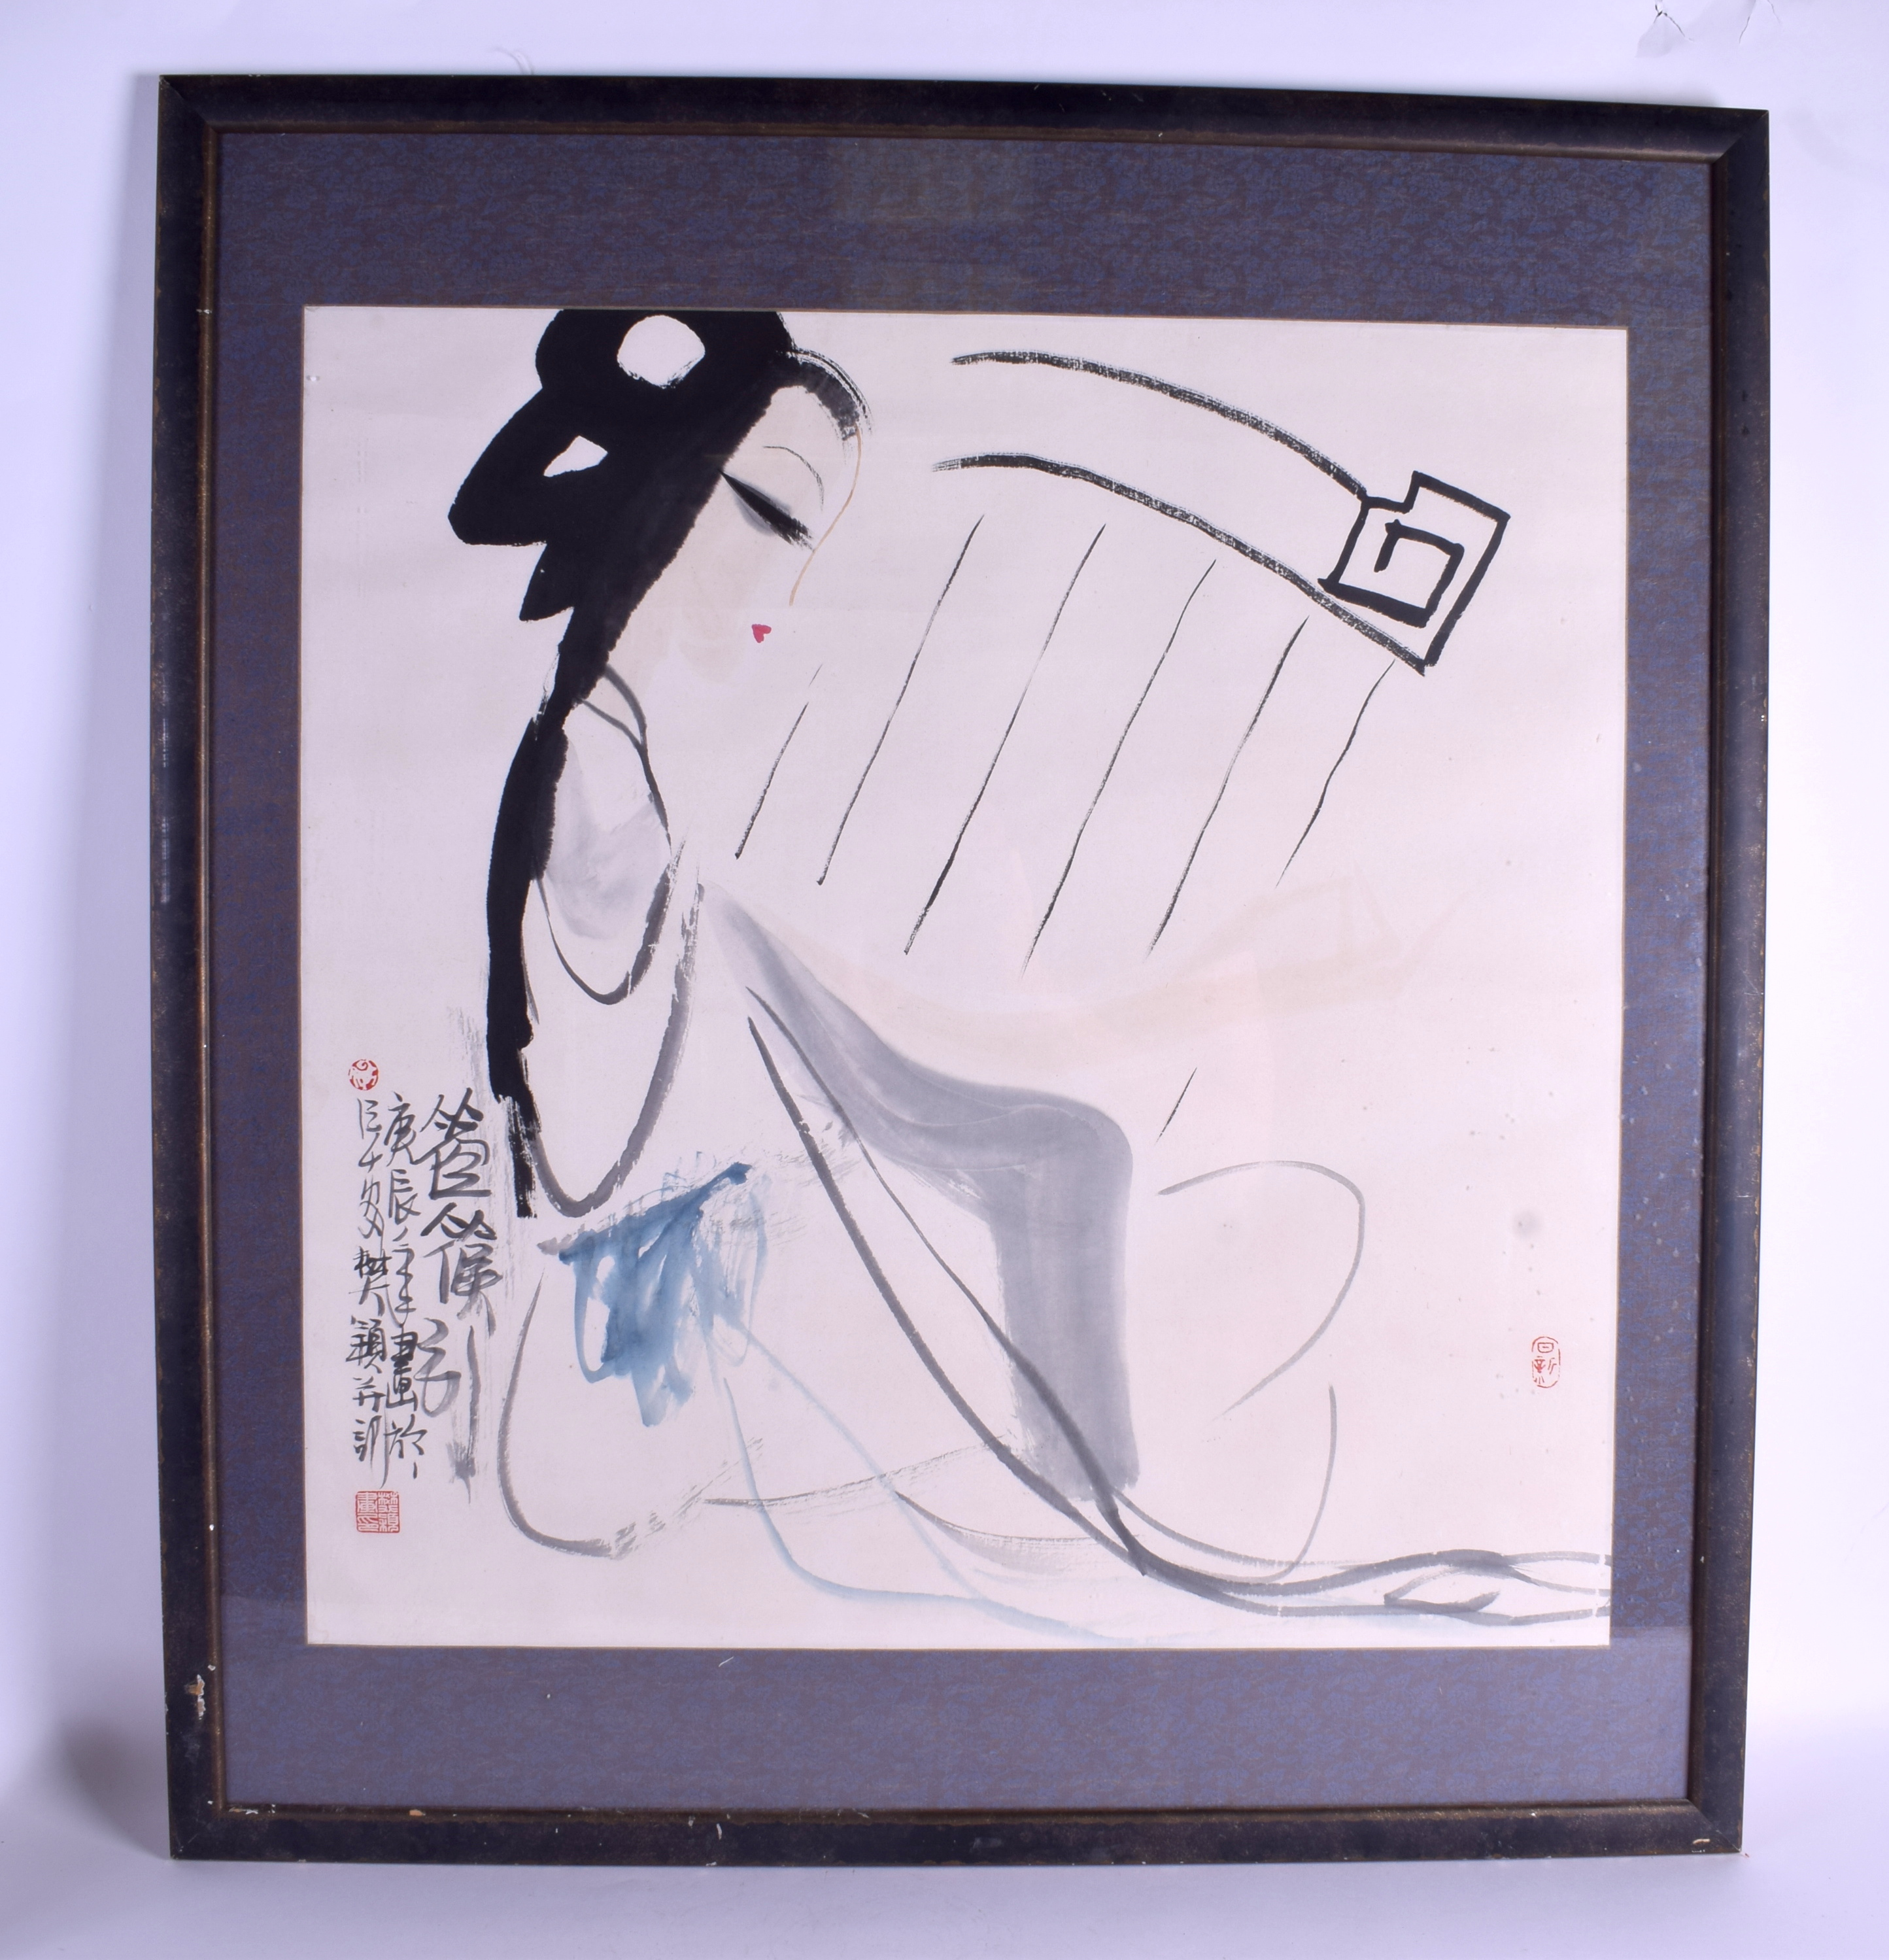 Lot 1327 - A MID 20TH CENTURY CHINESE FRAMED WATERCOLOUR C1940 entitled Kong Hou Jin, by Fan Ying. Image 66 cm